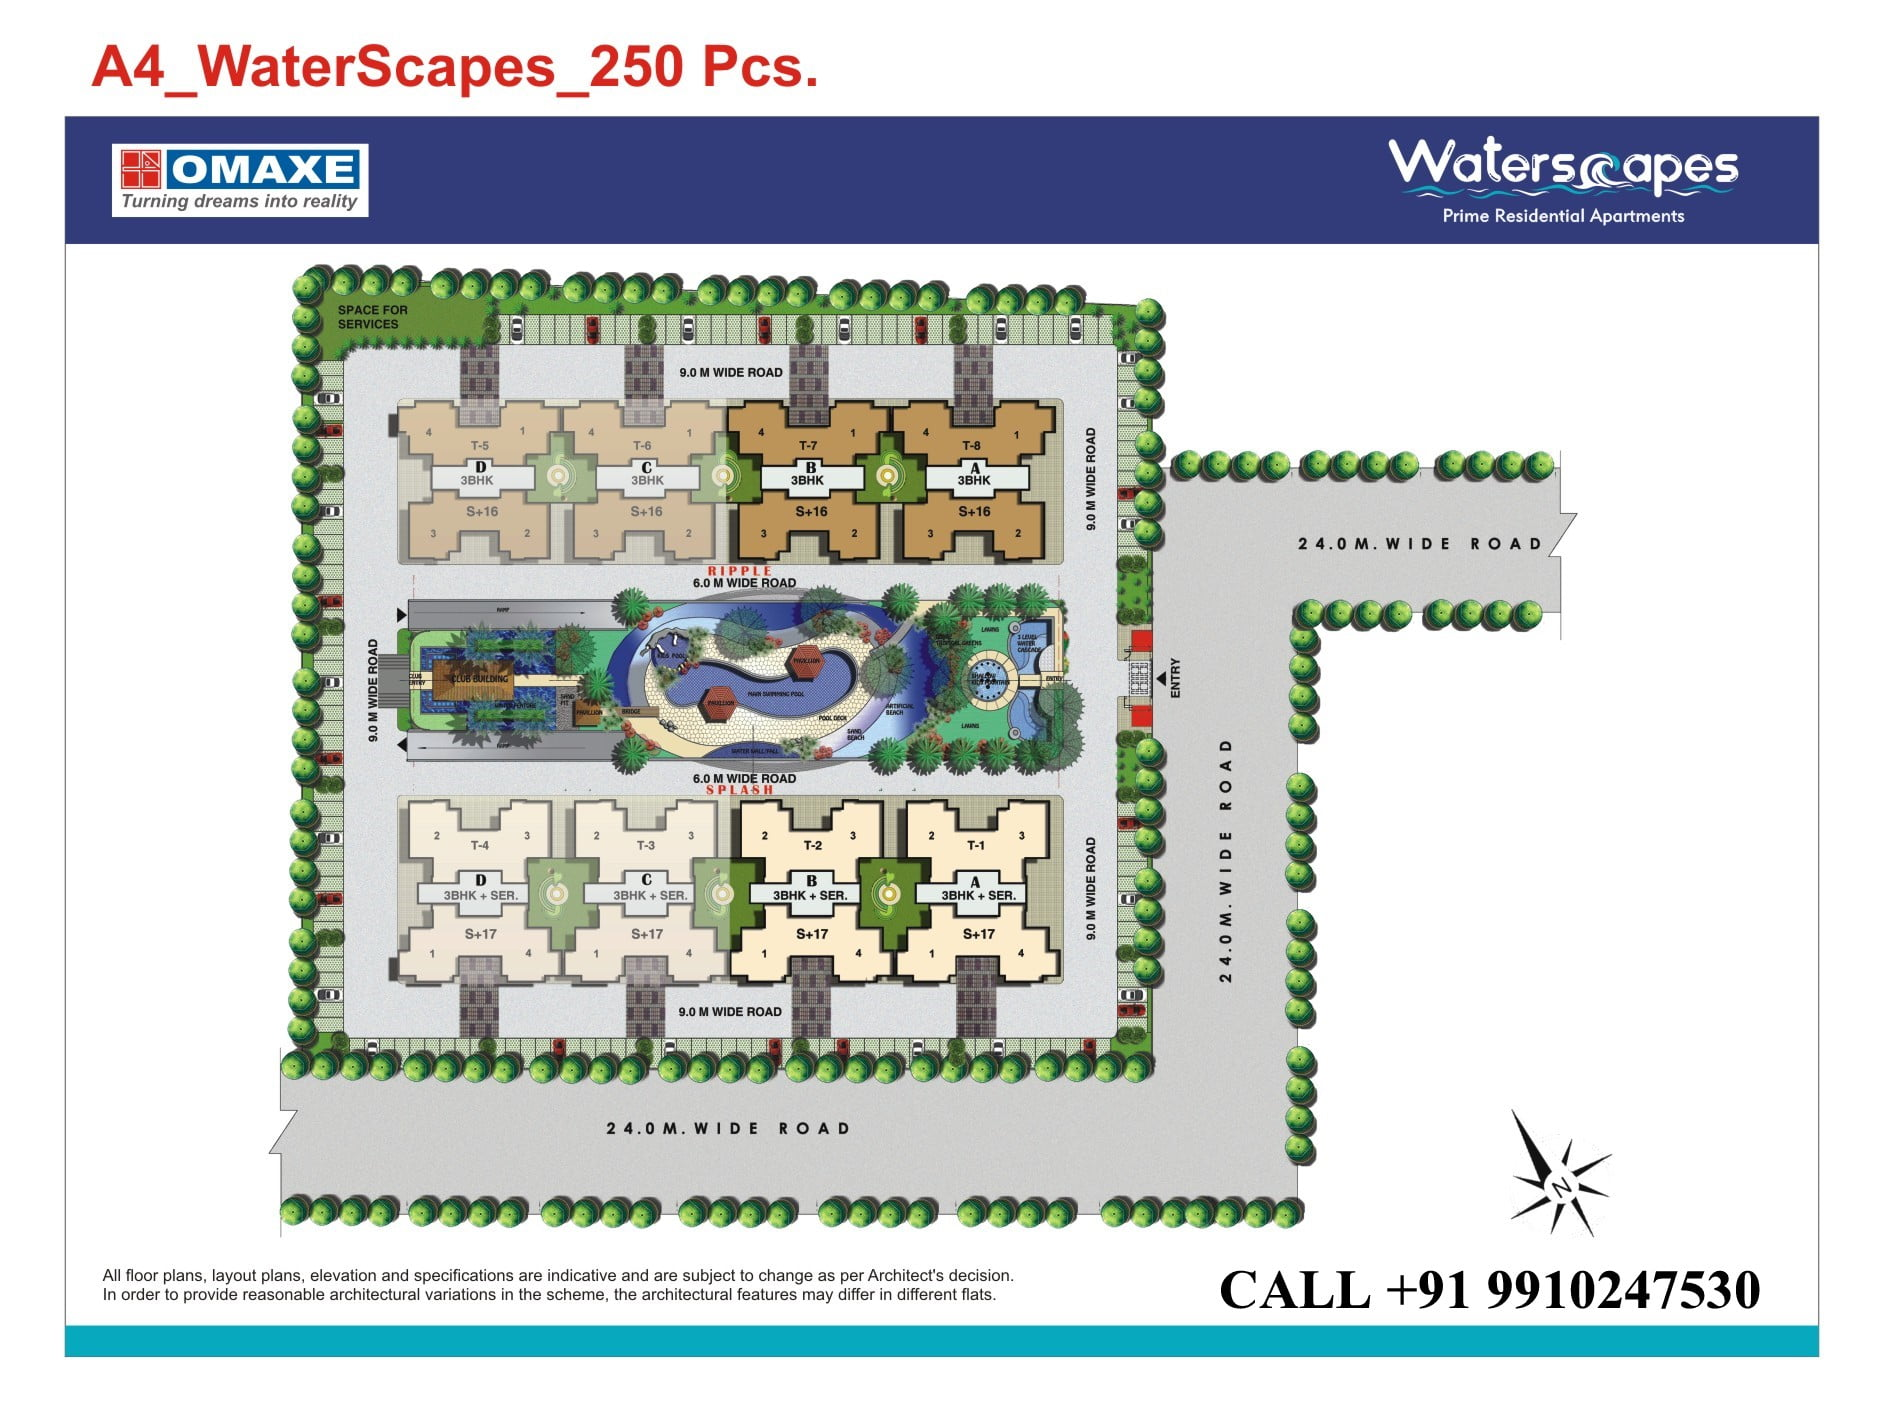 omaxe waterscapes siteplan